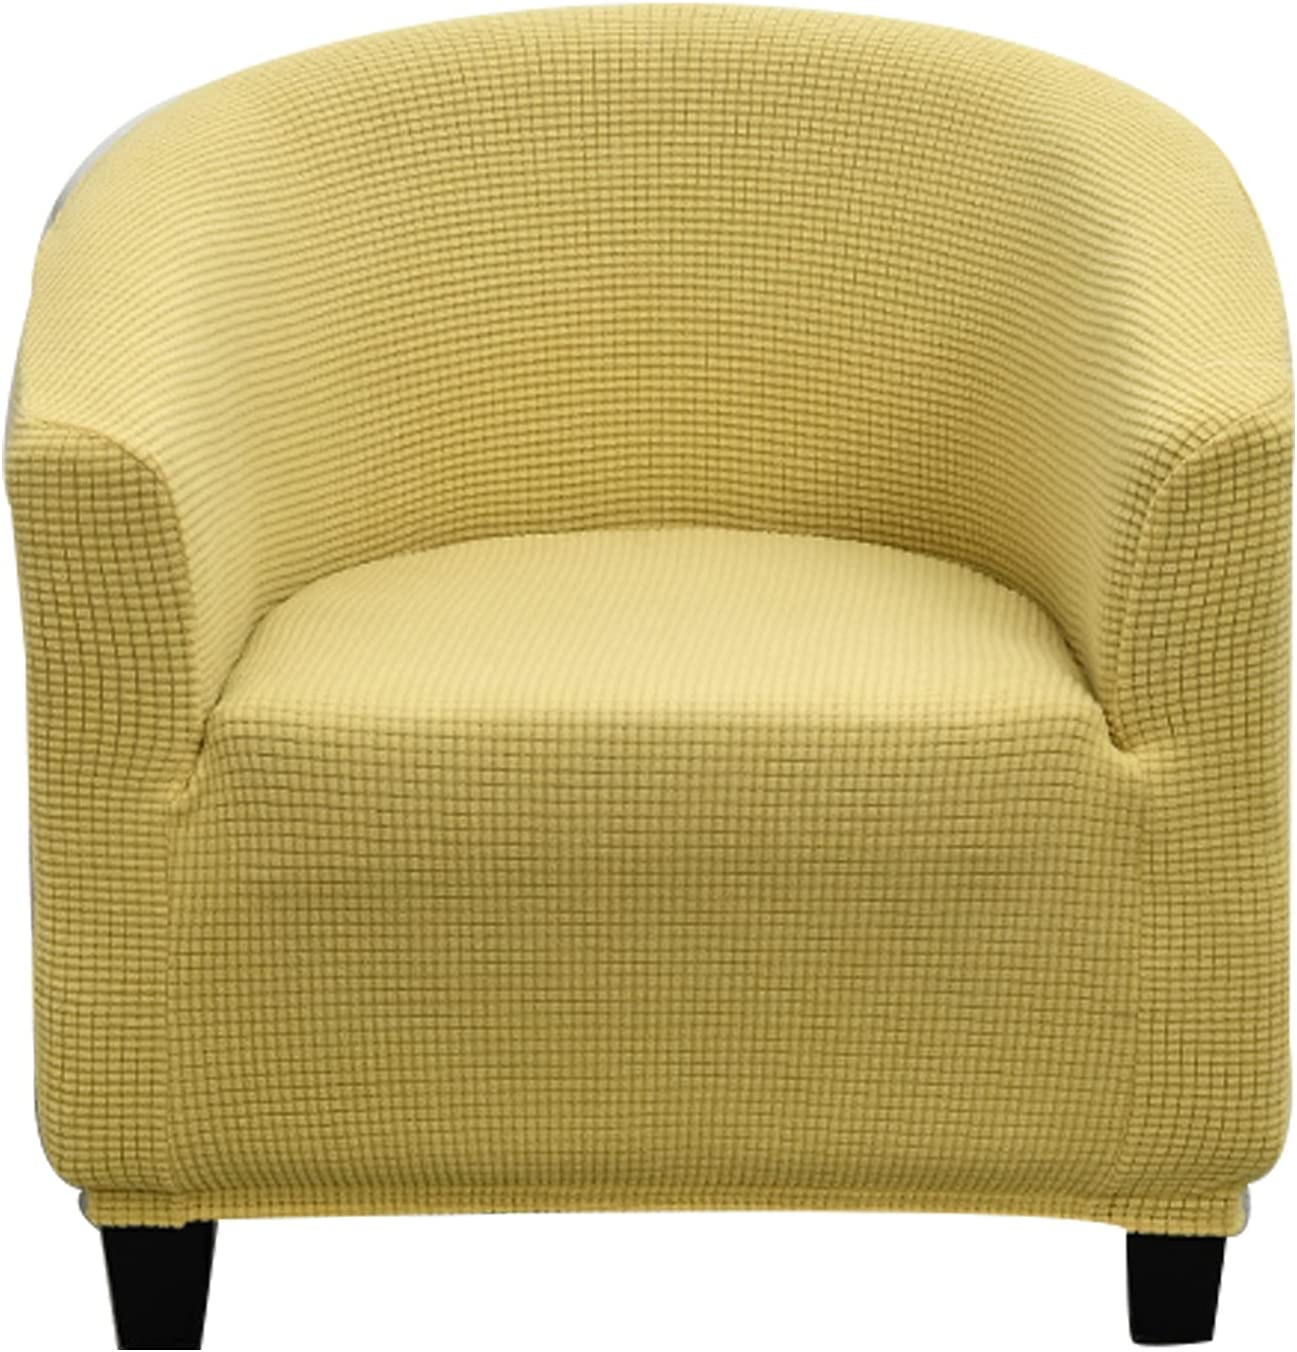 TTJJ 1 Piece Club Chair Slip Stretch Don't miss the campaign Armchair Spandex Slipcover 67% OFF of fixed price